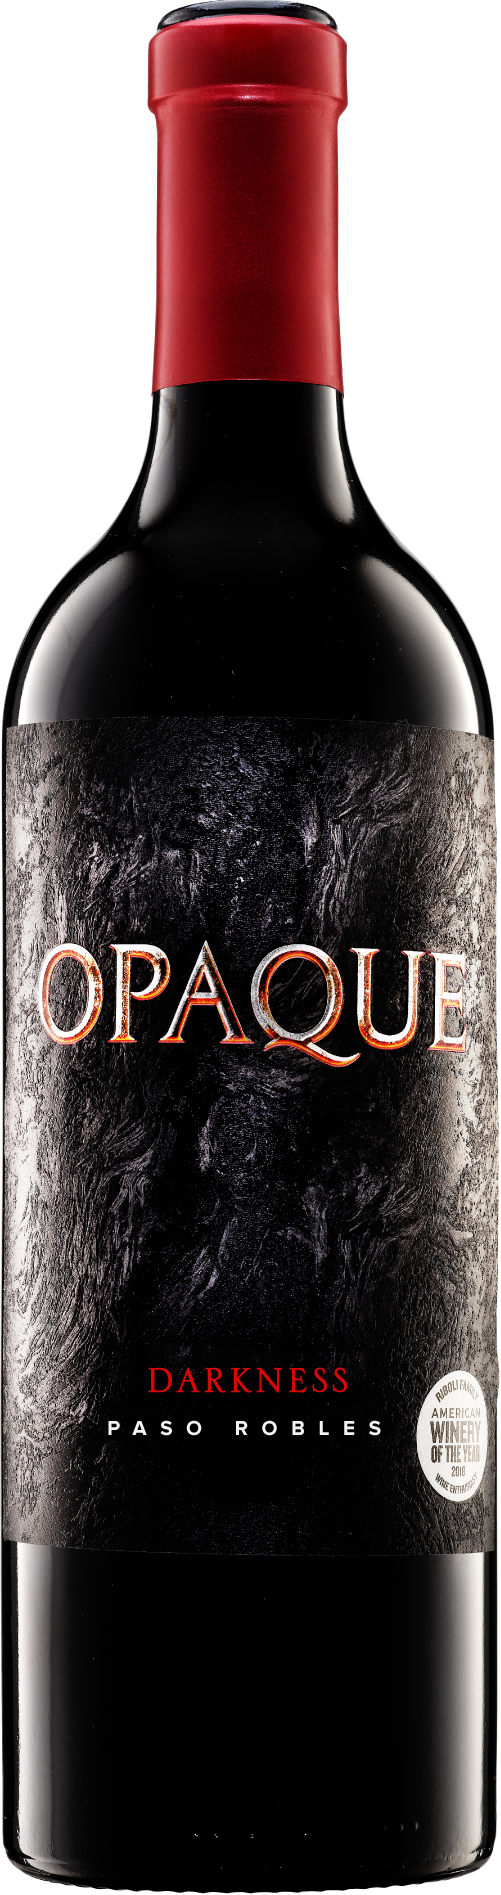 2017 Opaque Darkness, Paso Robles